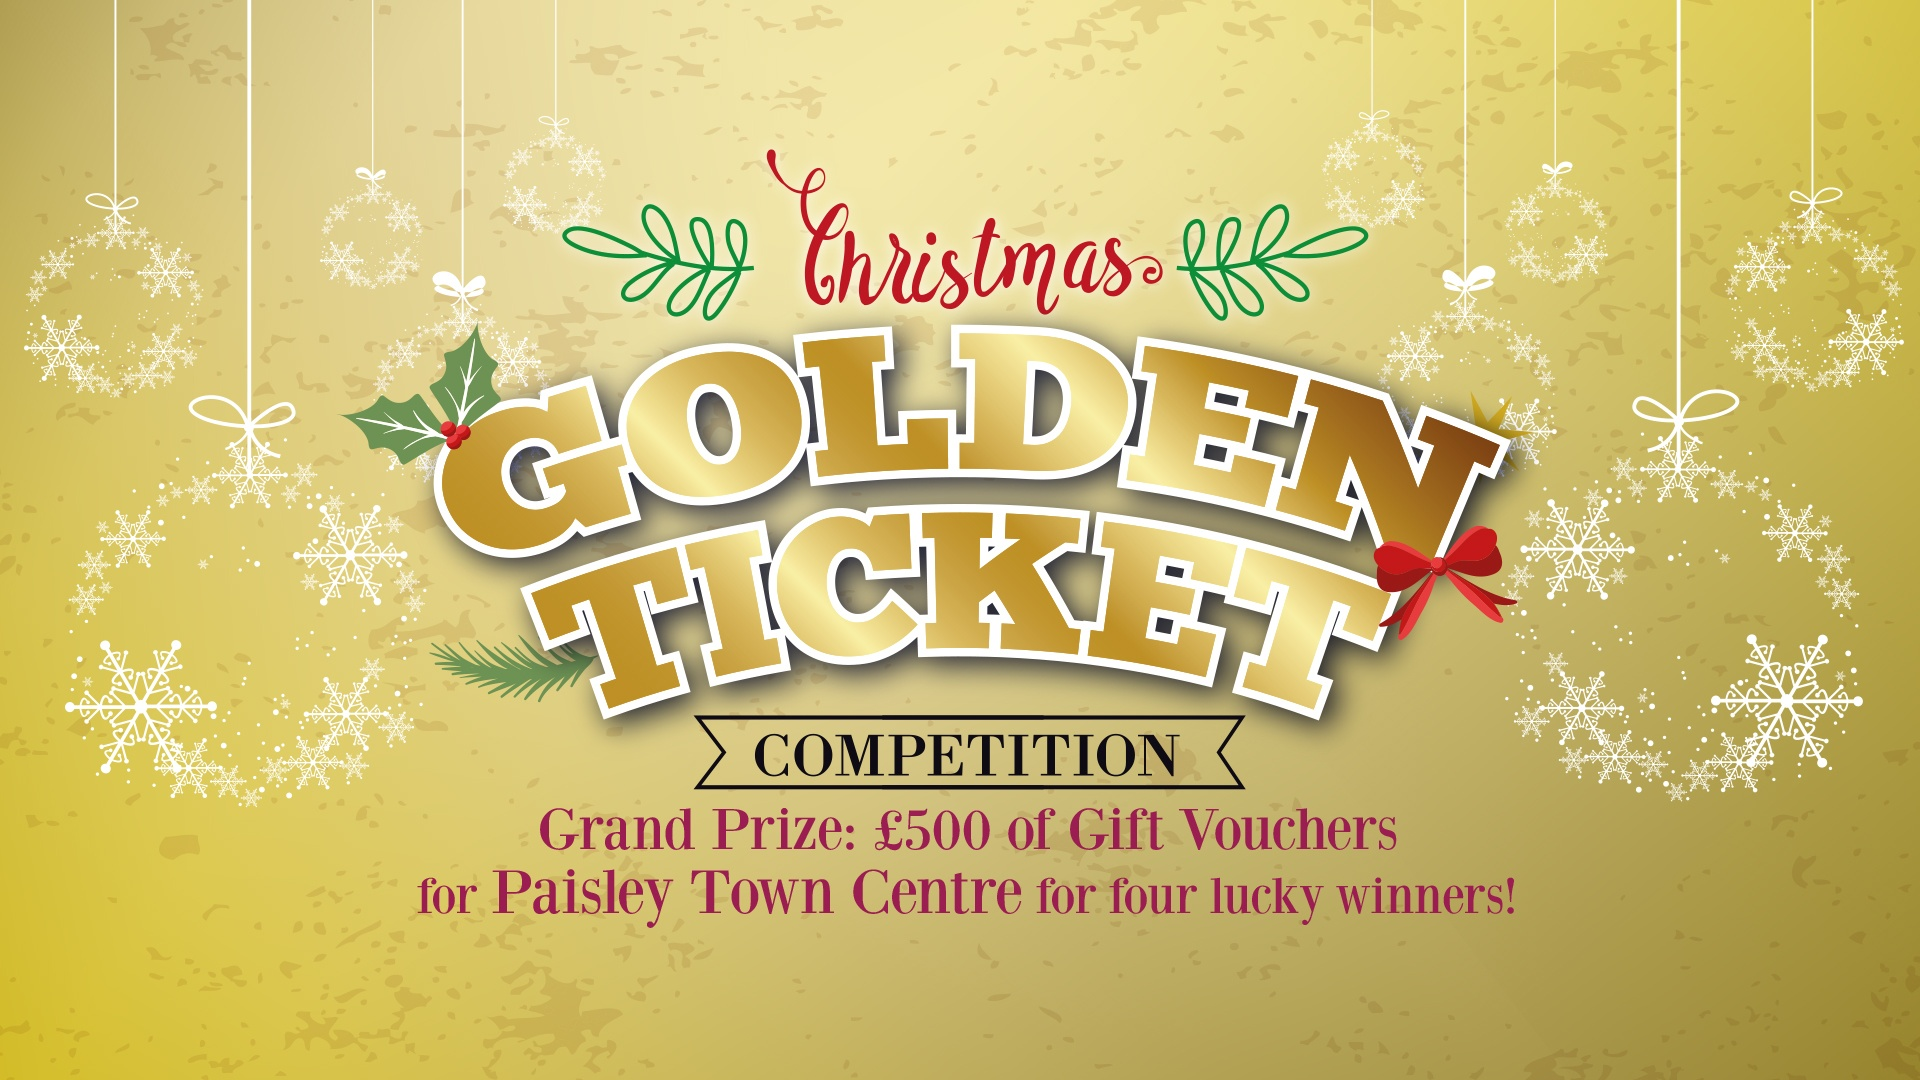 Paisley-First-Golden-Ticket-FACEBOOK-COVER-Christmas-2019-26-09-19